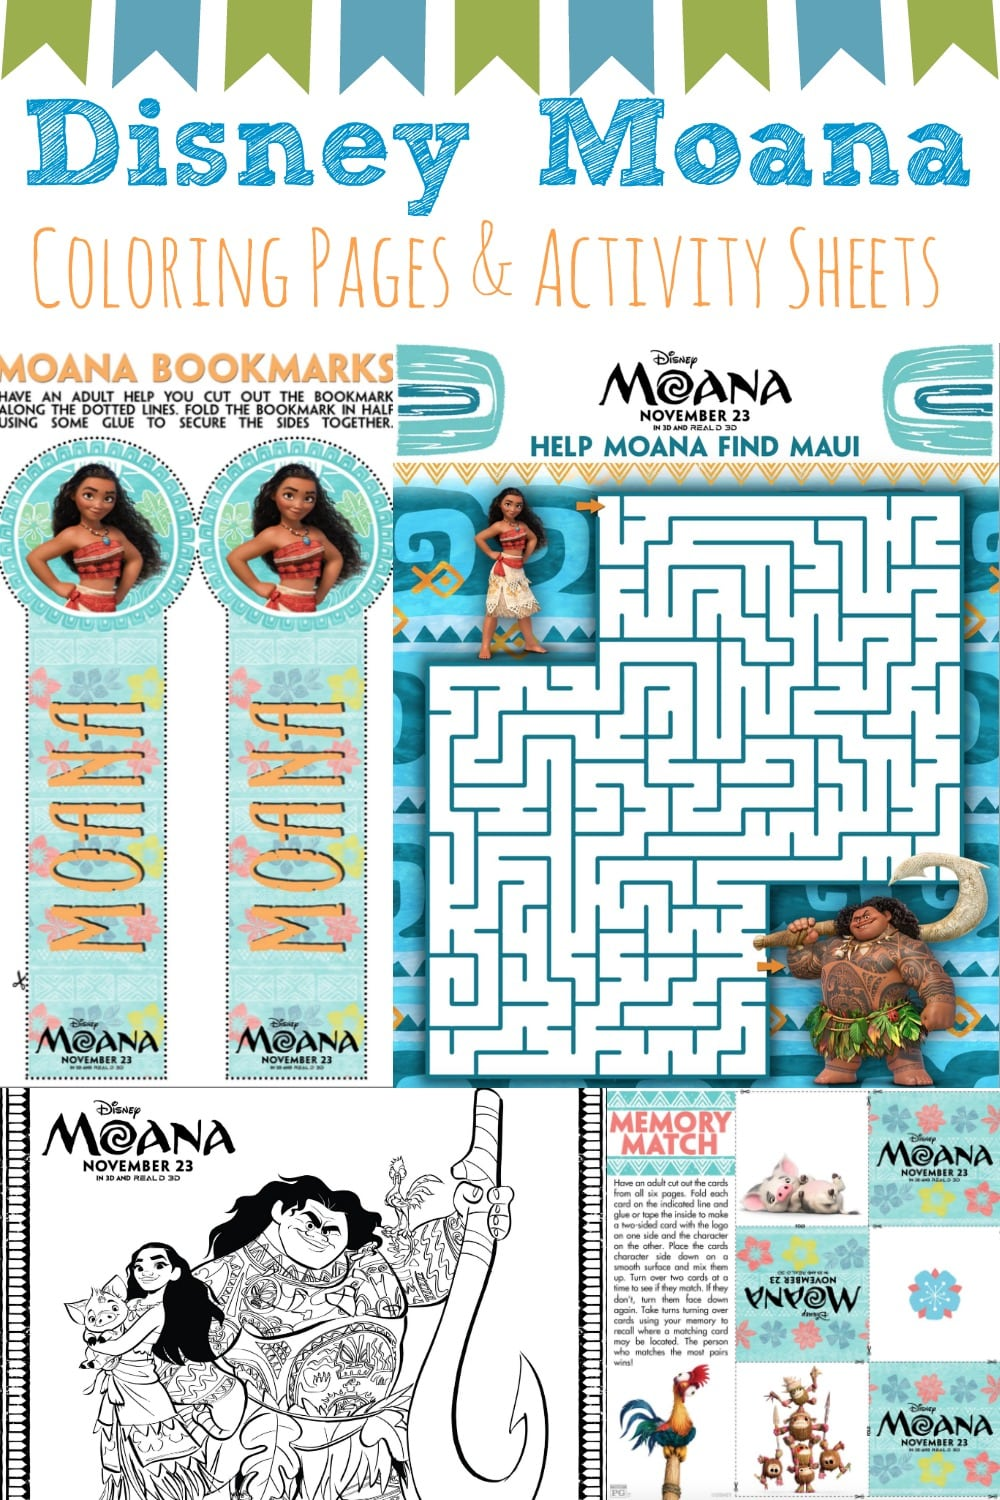 Moana Coloring Pages and Activity Sheets #Moana